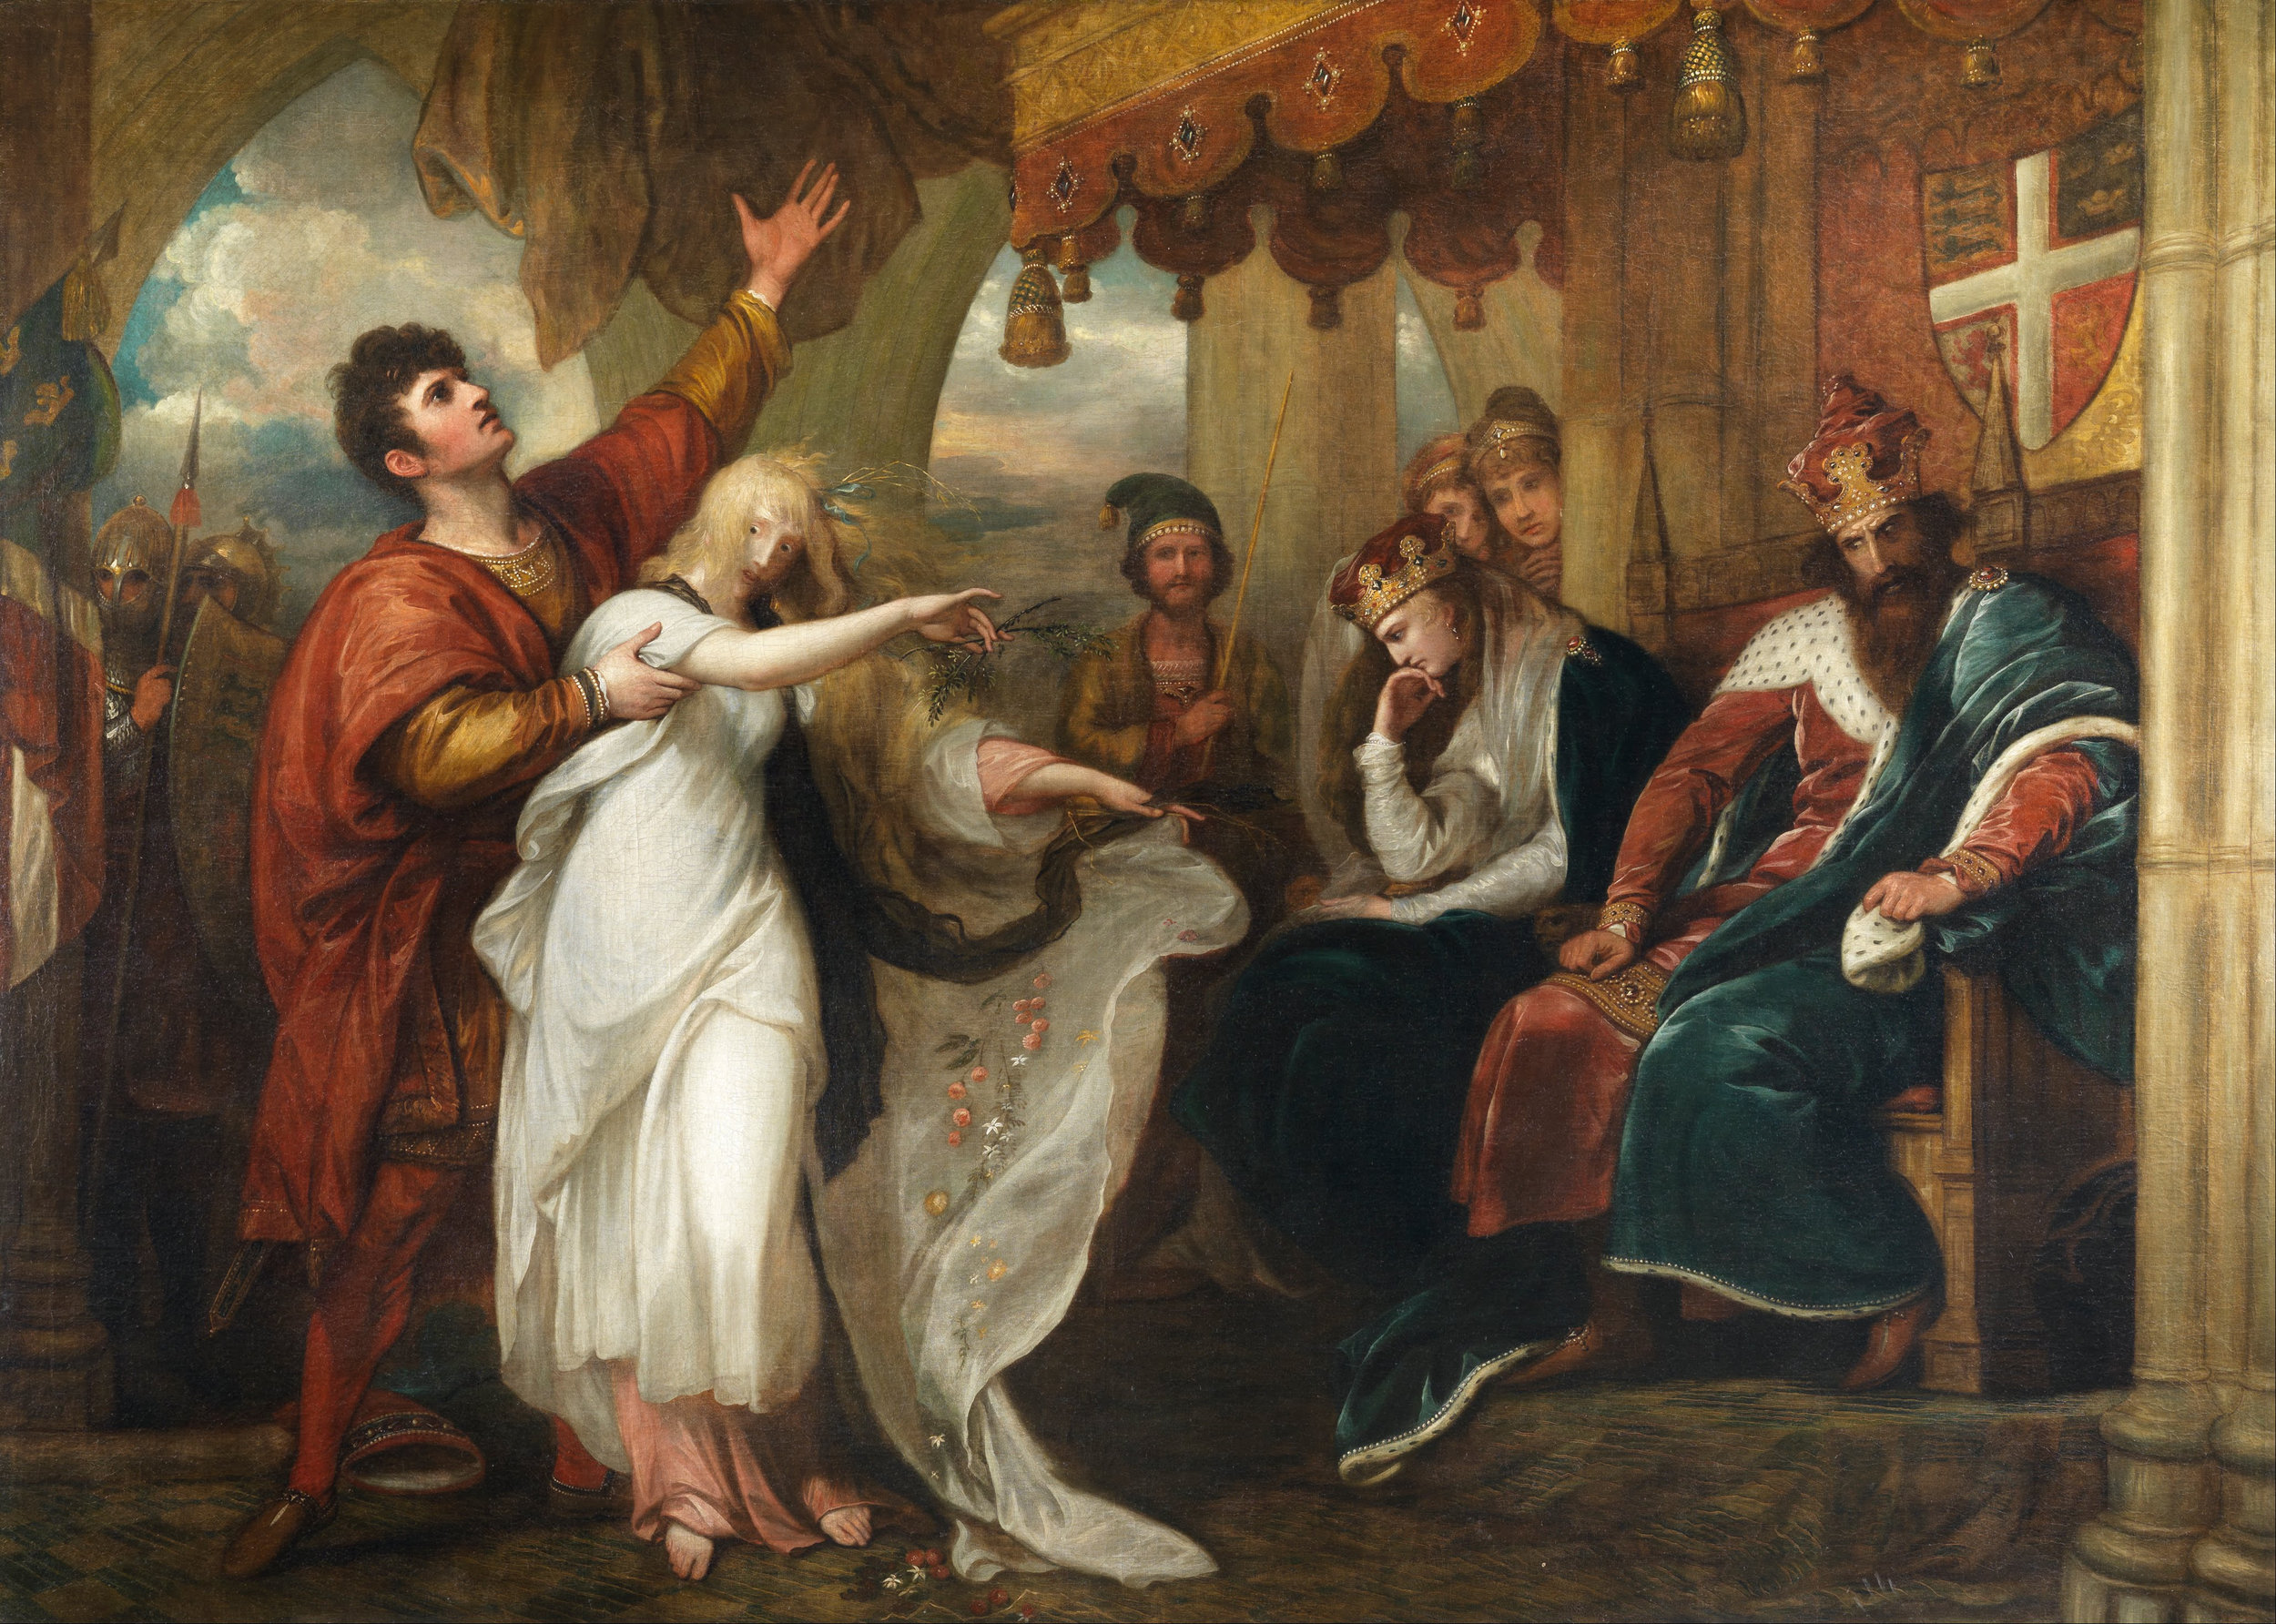 benjamin_west_-_hamlet-_act_iv_scene_v_ophelia_before_the_king_and_queen_-_google_art_project.jpg